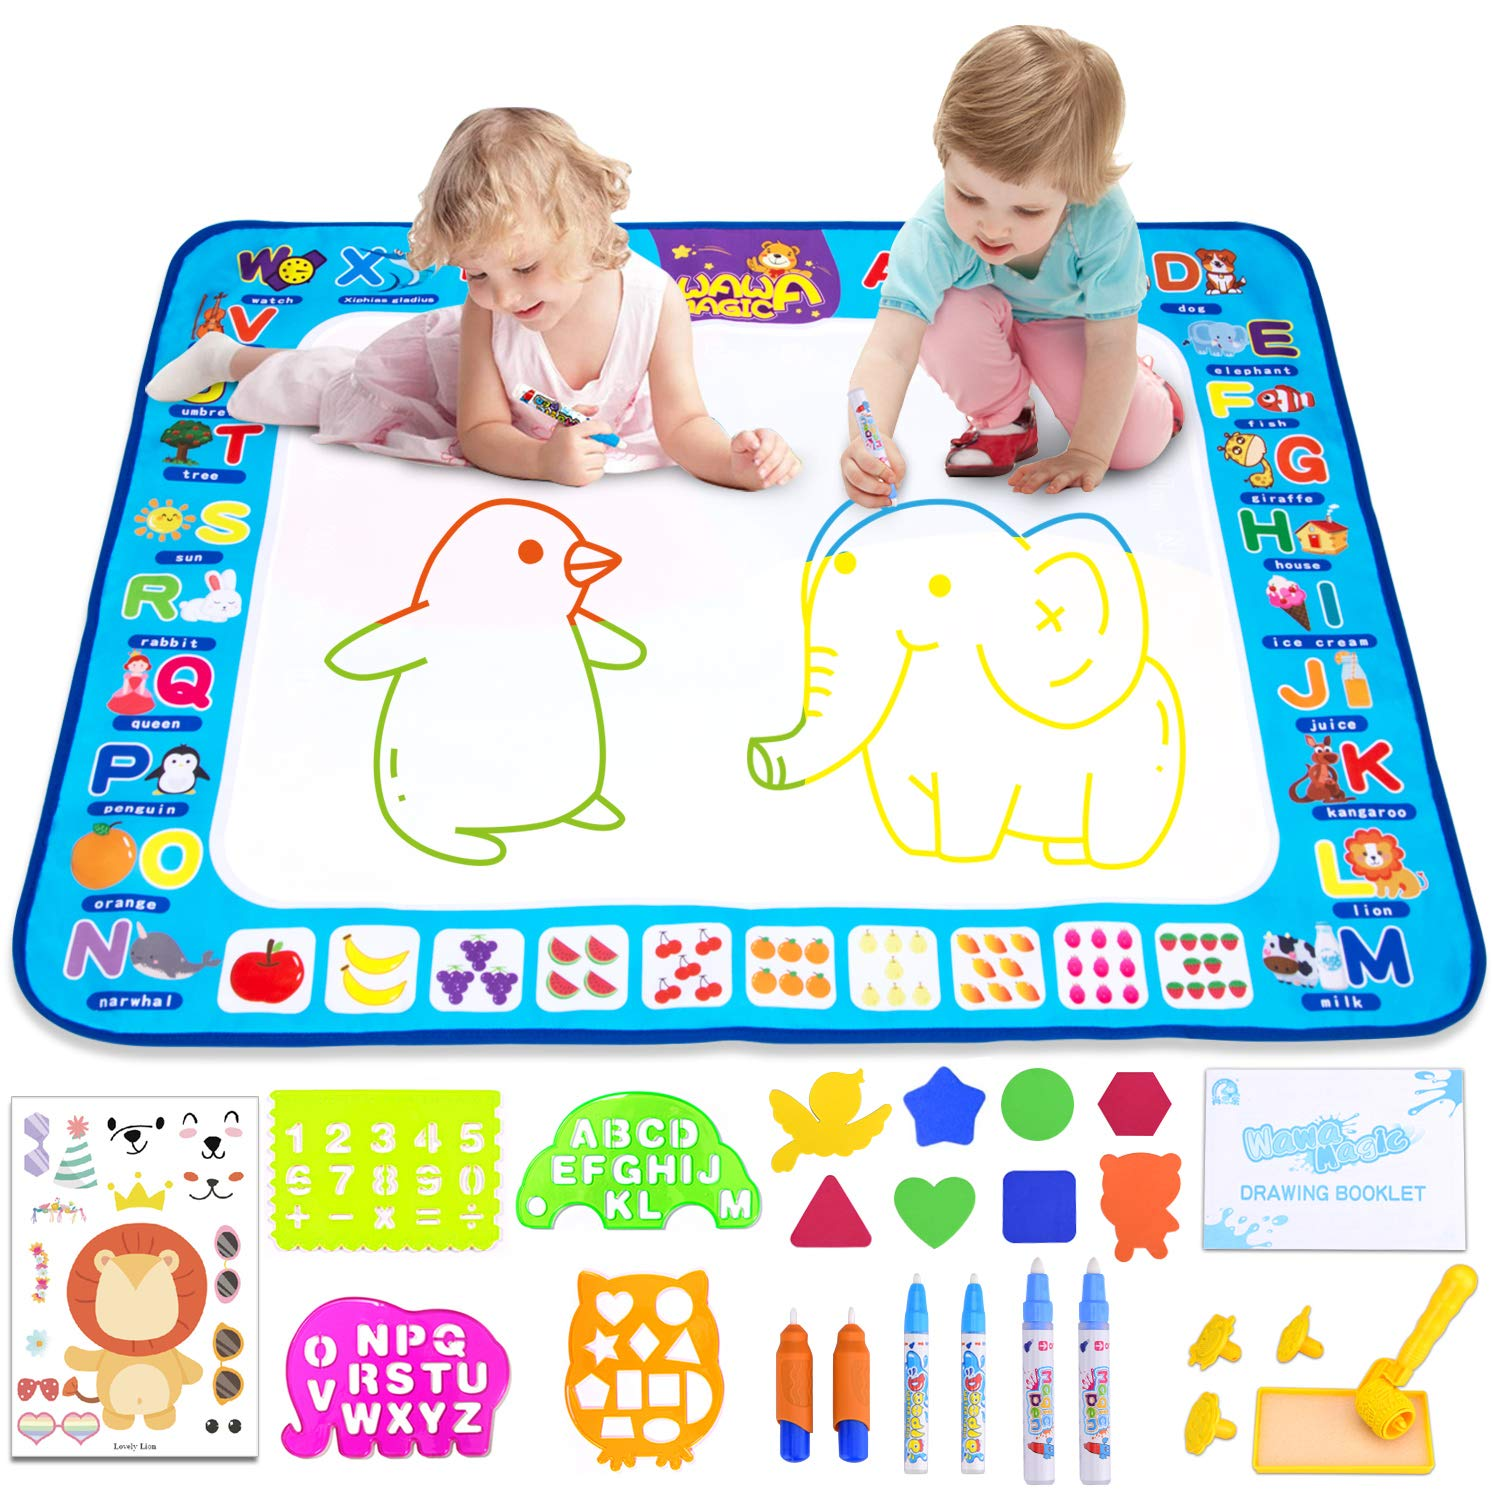 Morfone Aqua Magic Mat, Doodle Drawing Board Kids Water Painting Mat 40 X 29 Inch Educational Toys for Age 3 4 5 6 7 8 Girls Boys Toddlers ( Bonus Make-a-face Sticker Sheets )